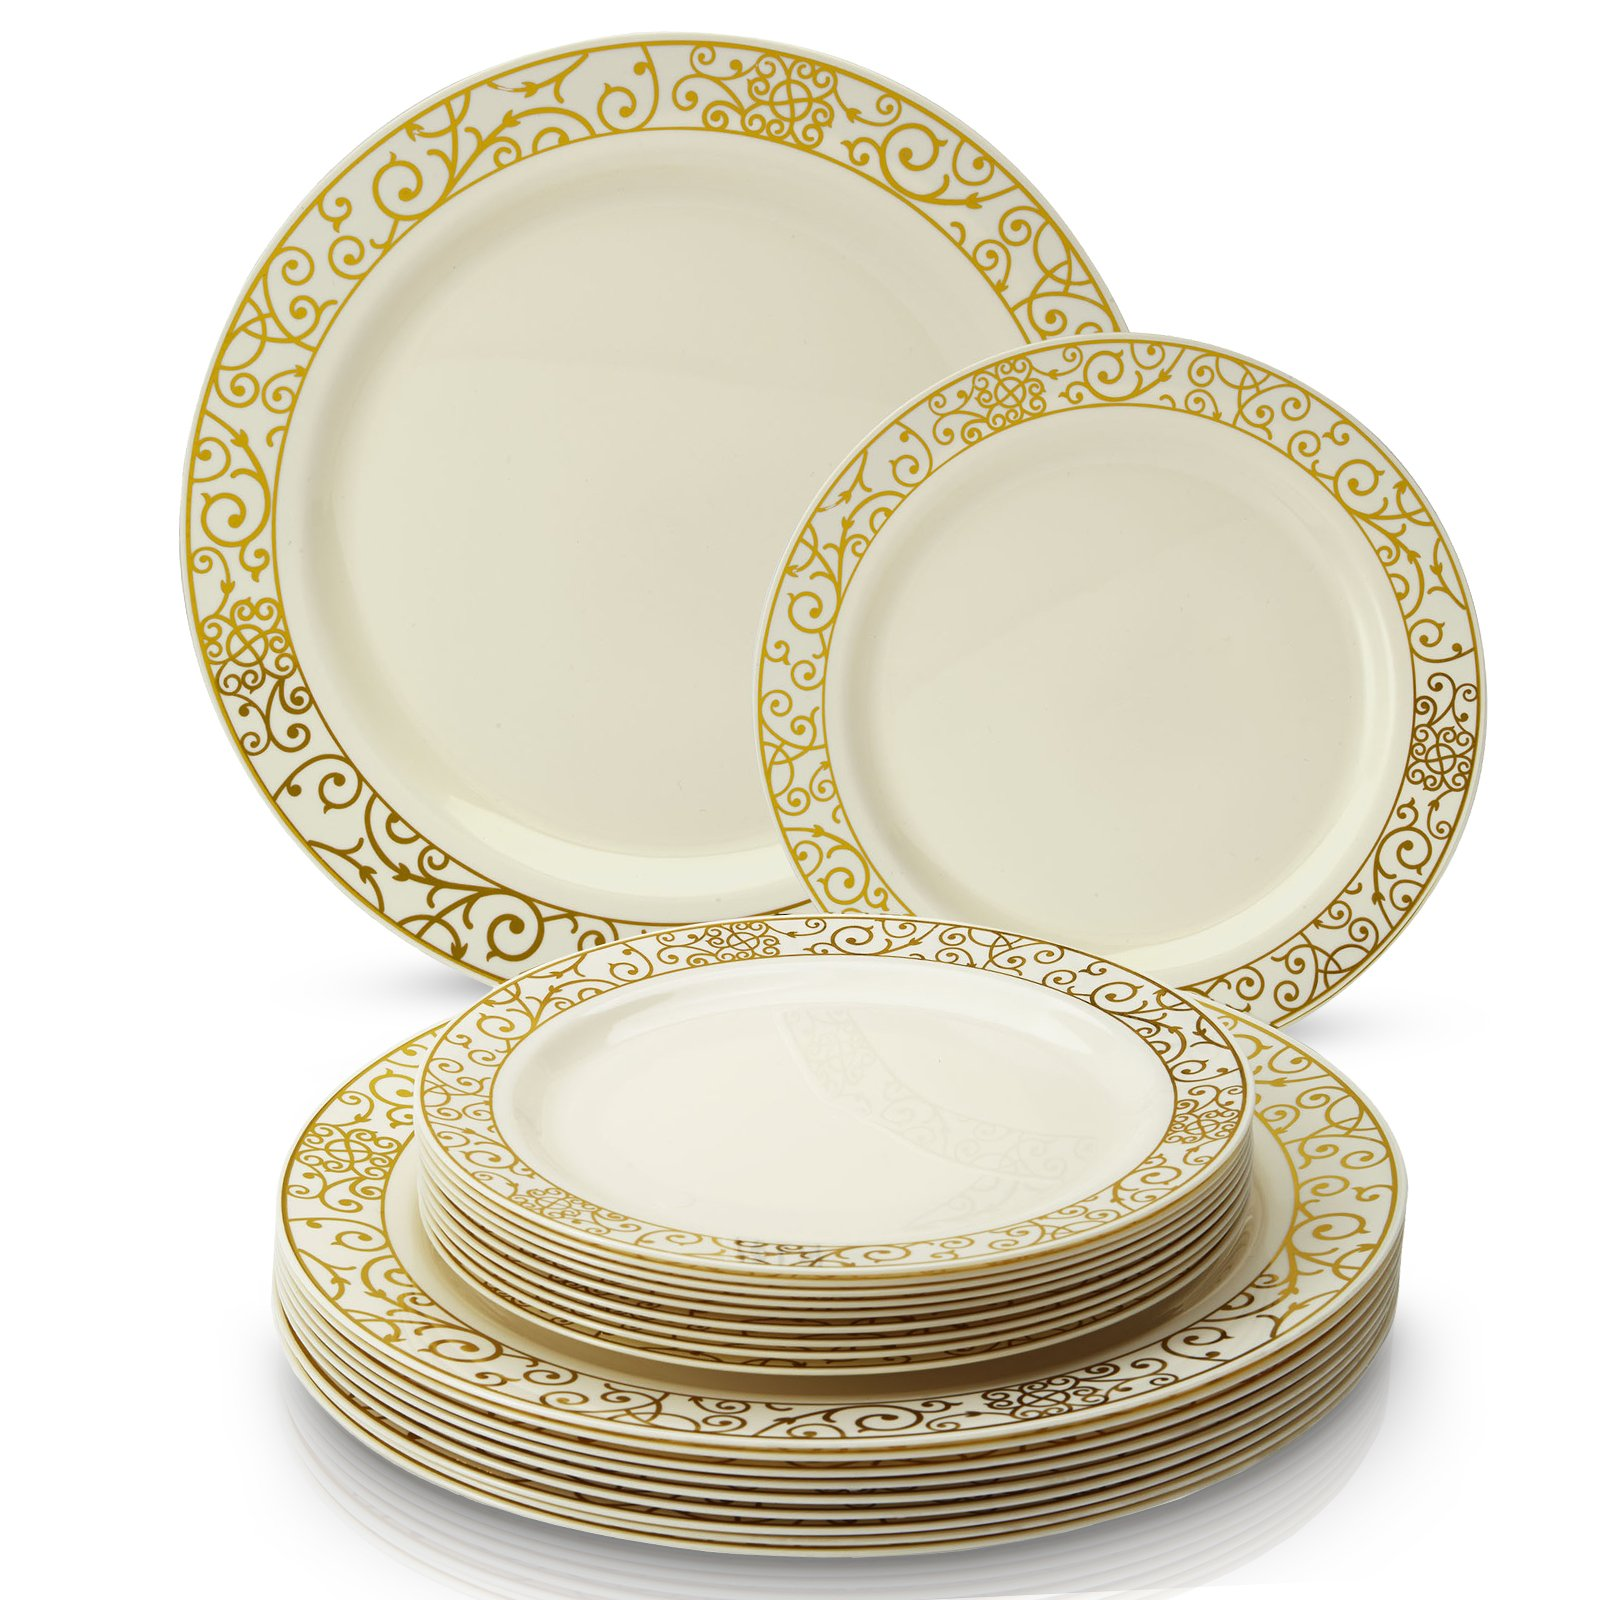 240-Piece of Posh Venetian Dinnerware Set | 120 PCS Dinner Plates and 120 PCS Salad/Dessert Plates | Elegant Plastic China Flatware Accented with Gold Rim | For Fine Dining and Events (Ivory-Gold)